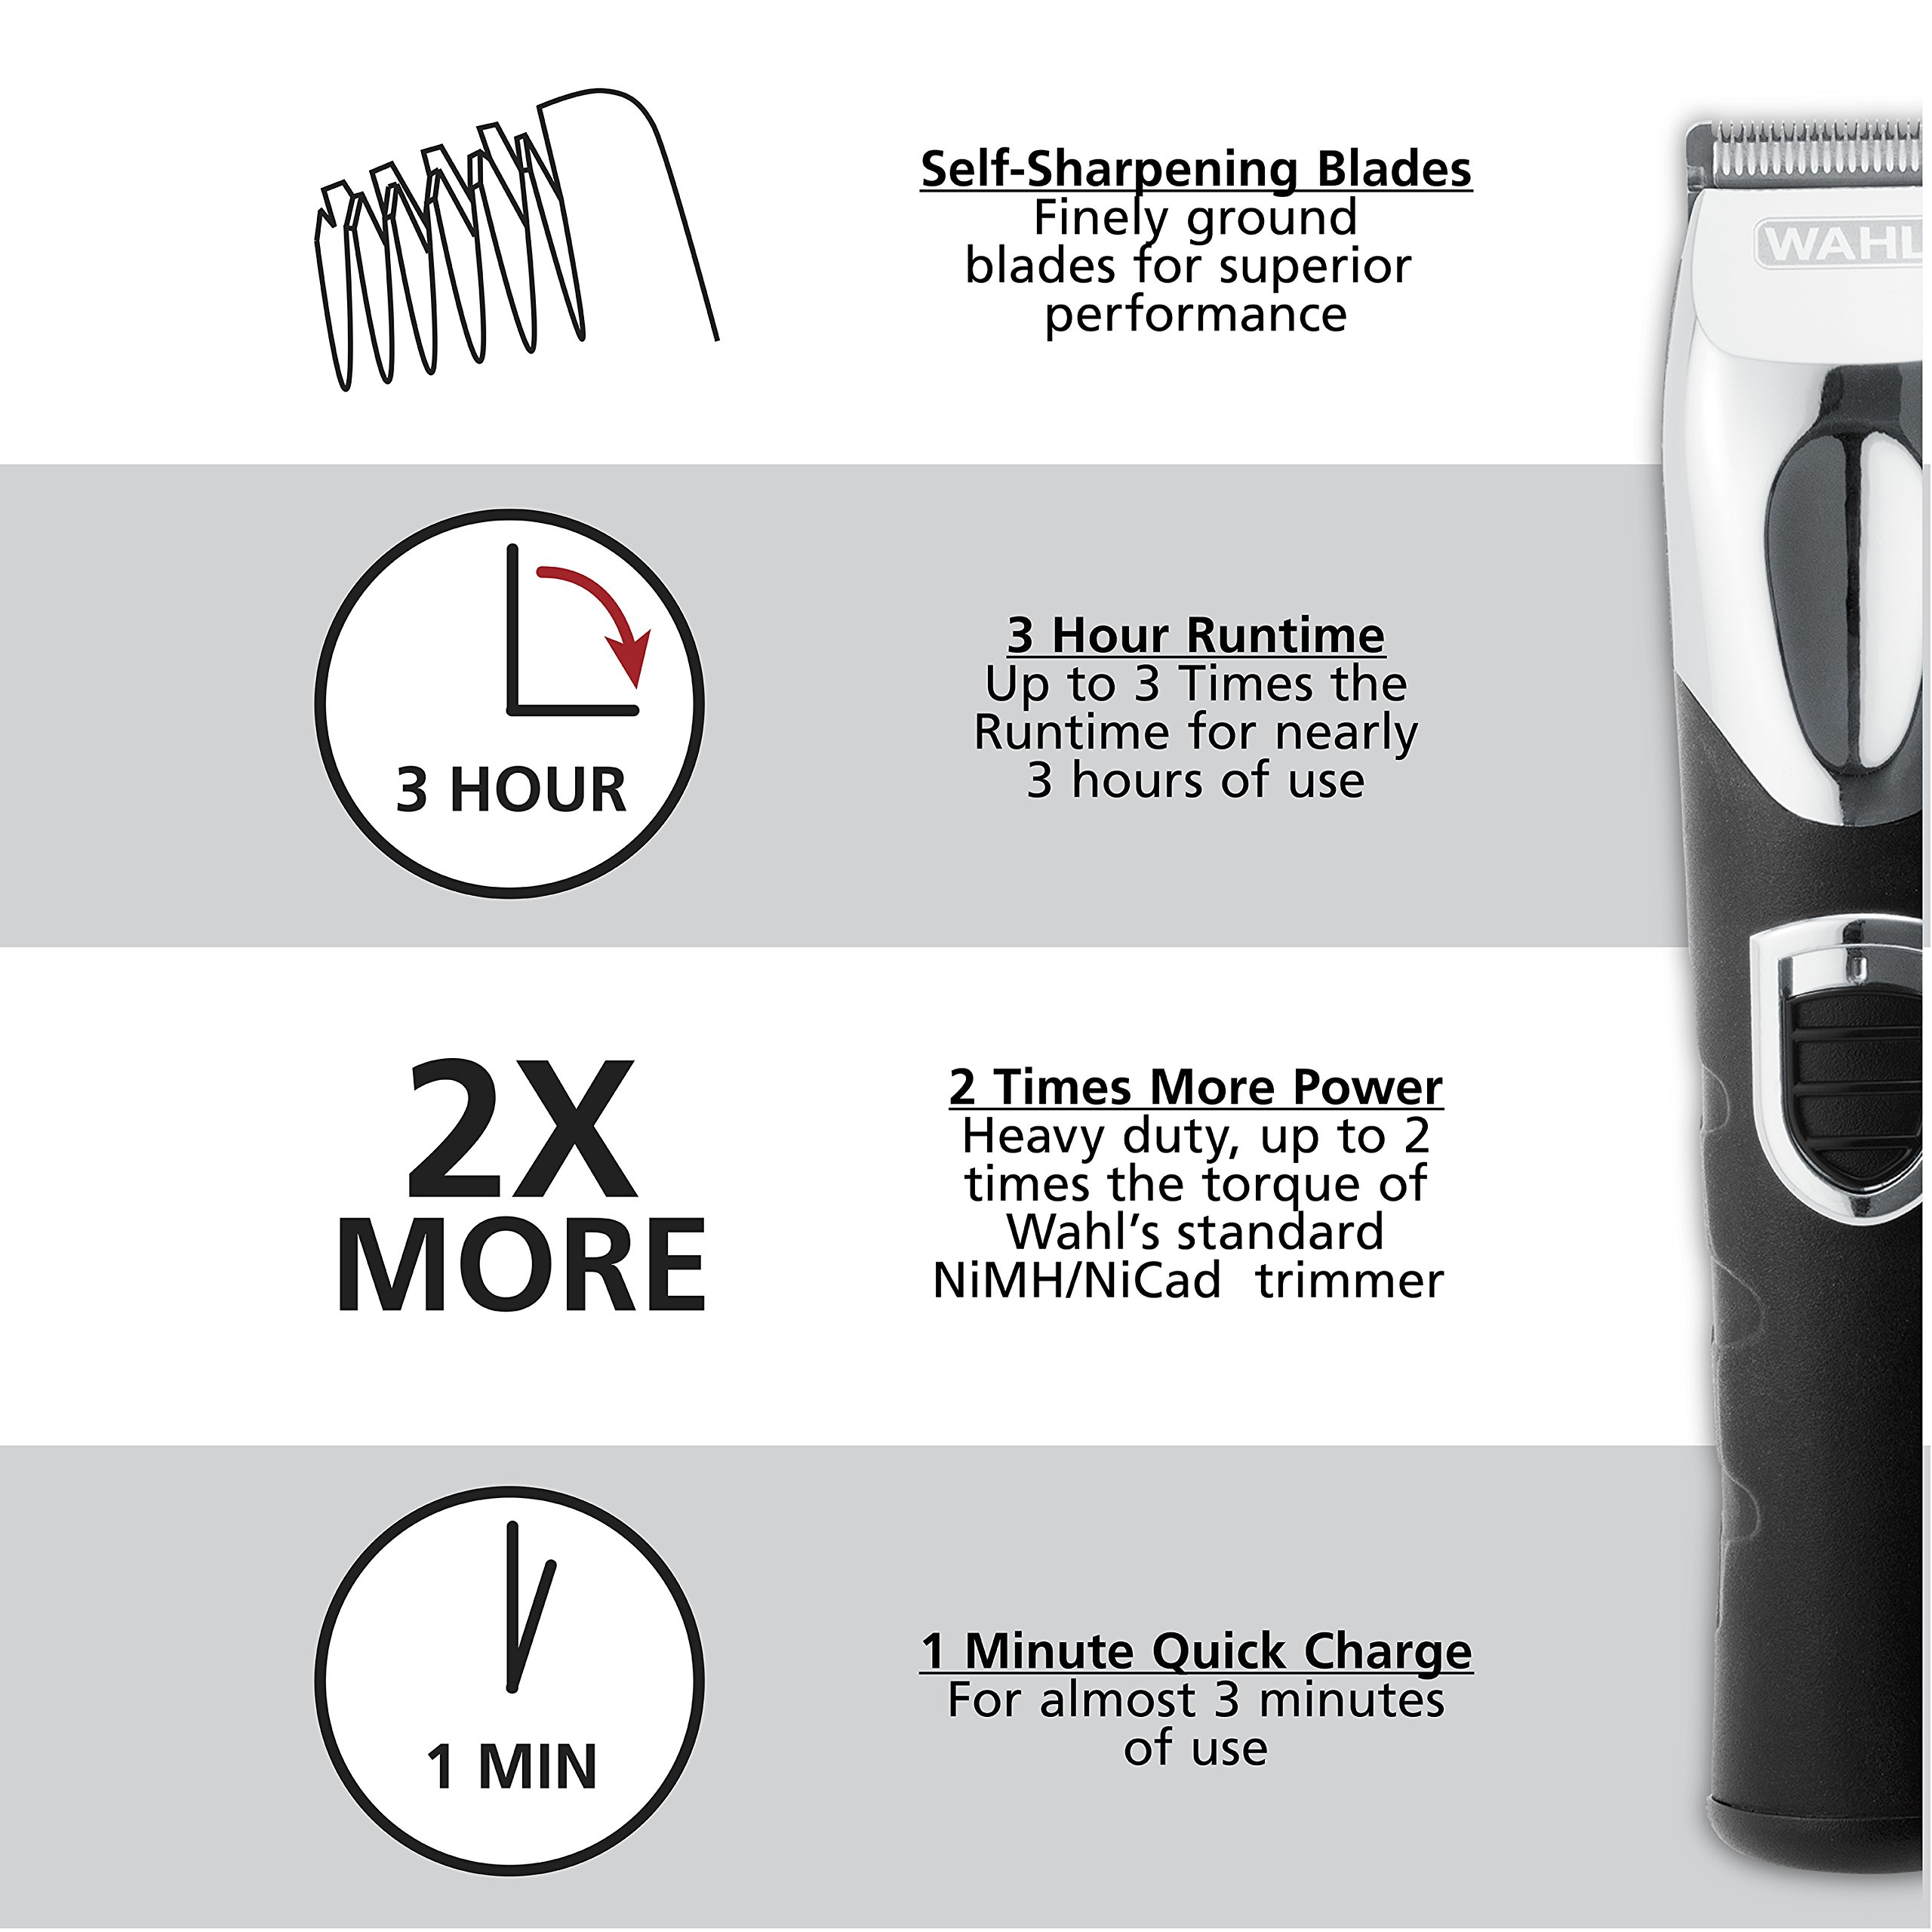 Wahl Beard Trimmer, Lithium Ion All-in-One Men's Grooming Kit with Rechargeable Beard Trimmers, Hair Clippers, and Electric Shavers by the Brand Used by Professionals #9854-600 by Wahl (Image #2)